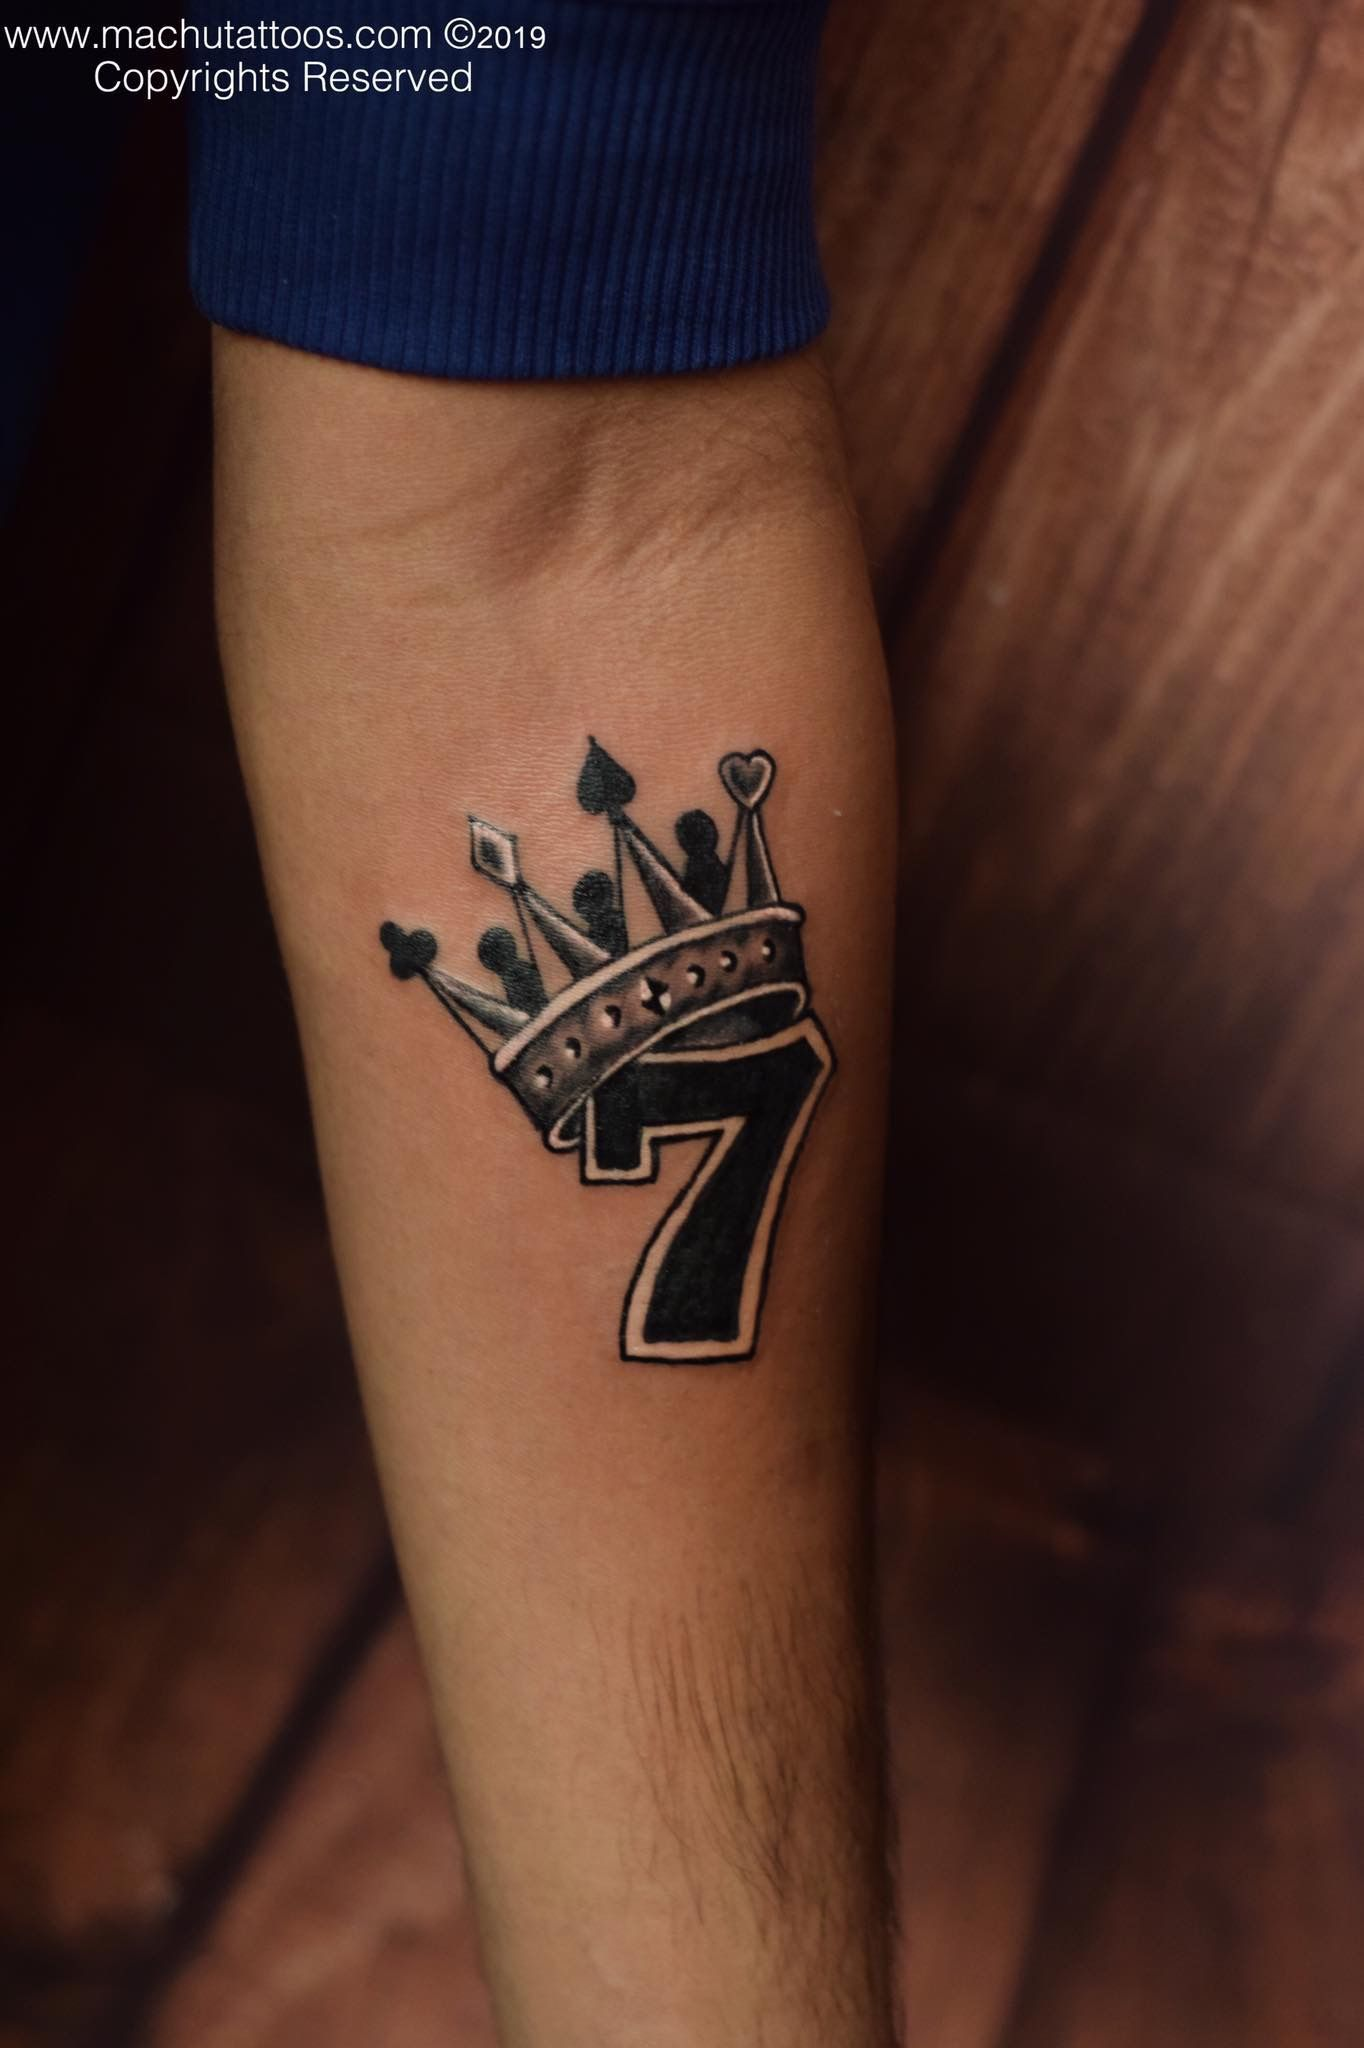 King Crown On Lucky Number Seven Tattoo Done By Suresh Machu From Machu Tattoo Studio Bangalore India Eleg In 2020 Crown Tattoo Lucky Tattoo Crown Tattoo Design